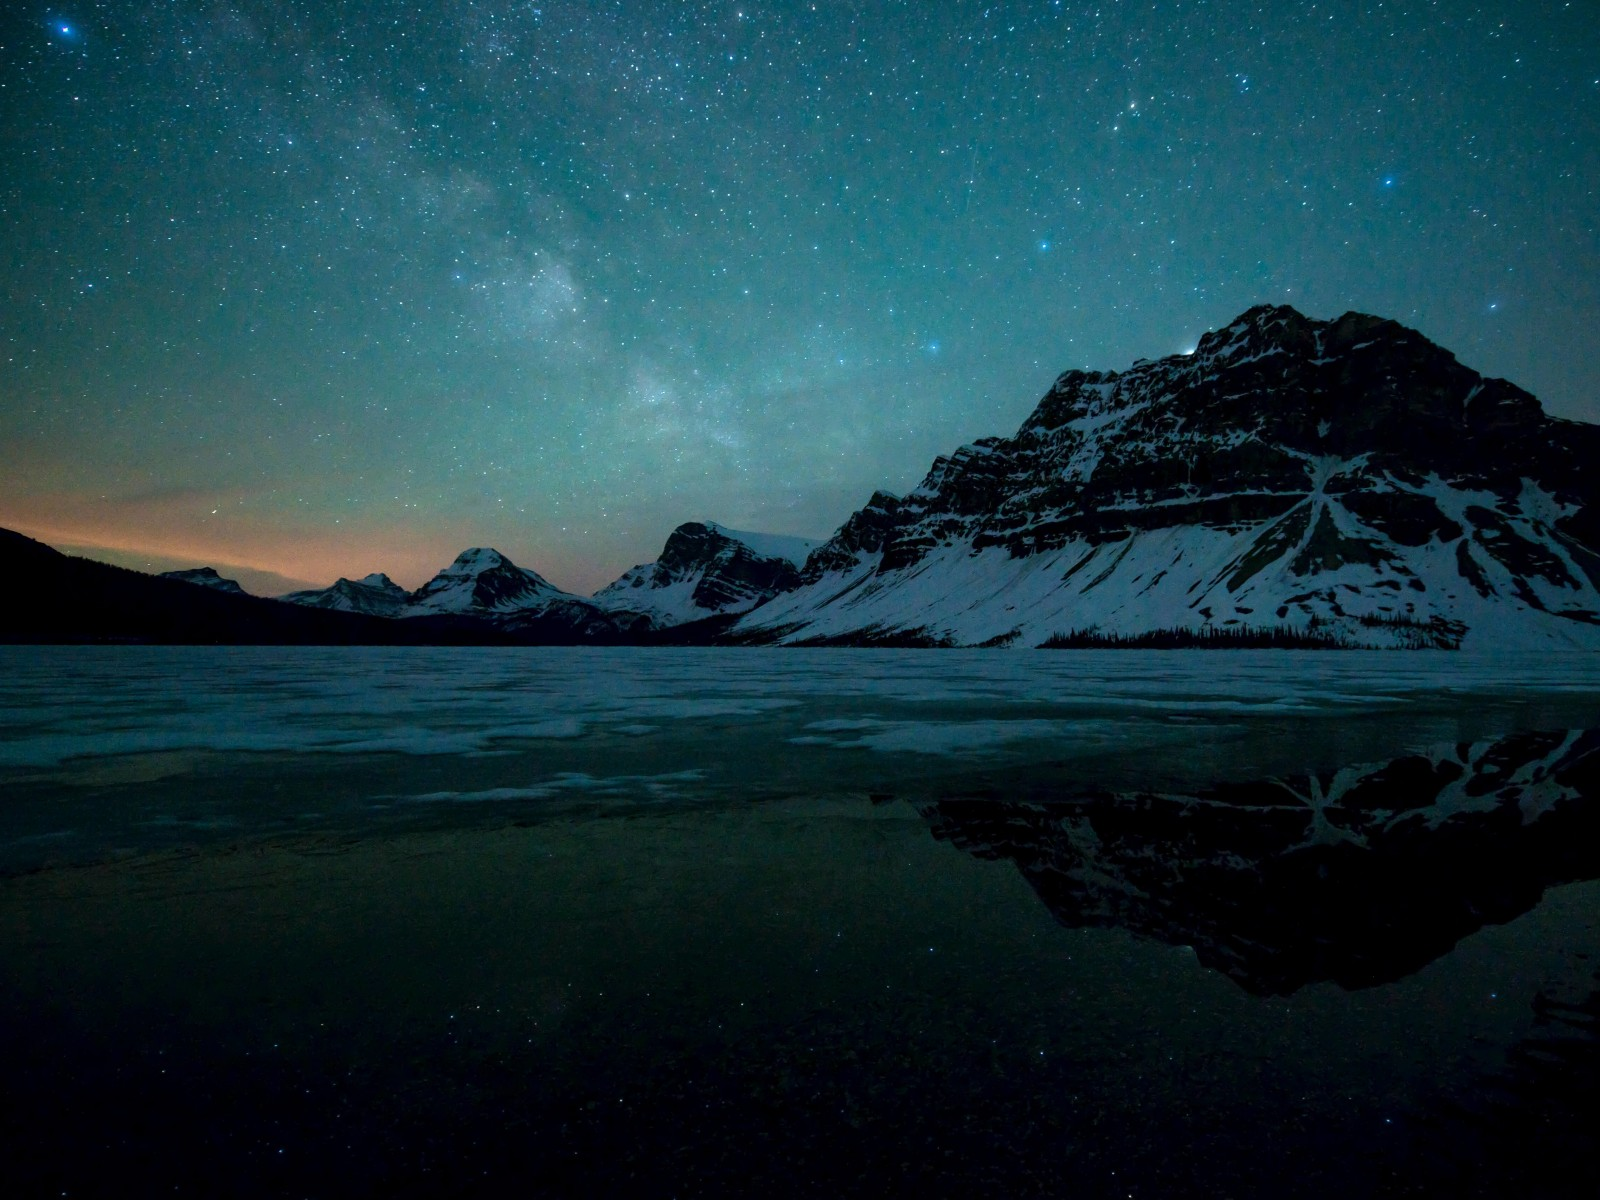 Milky Way over Bow Lake, Alberta, Canada Wallpaper for Desktop 1600x1200